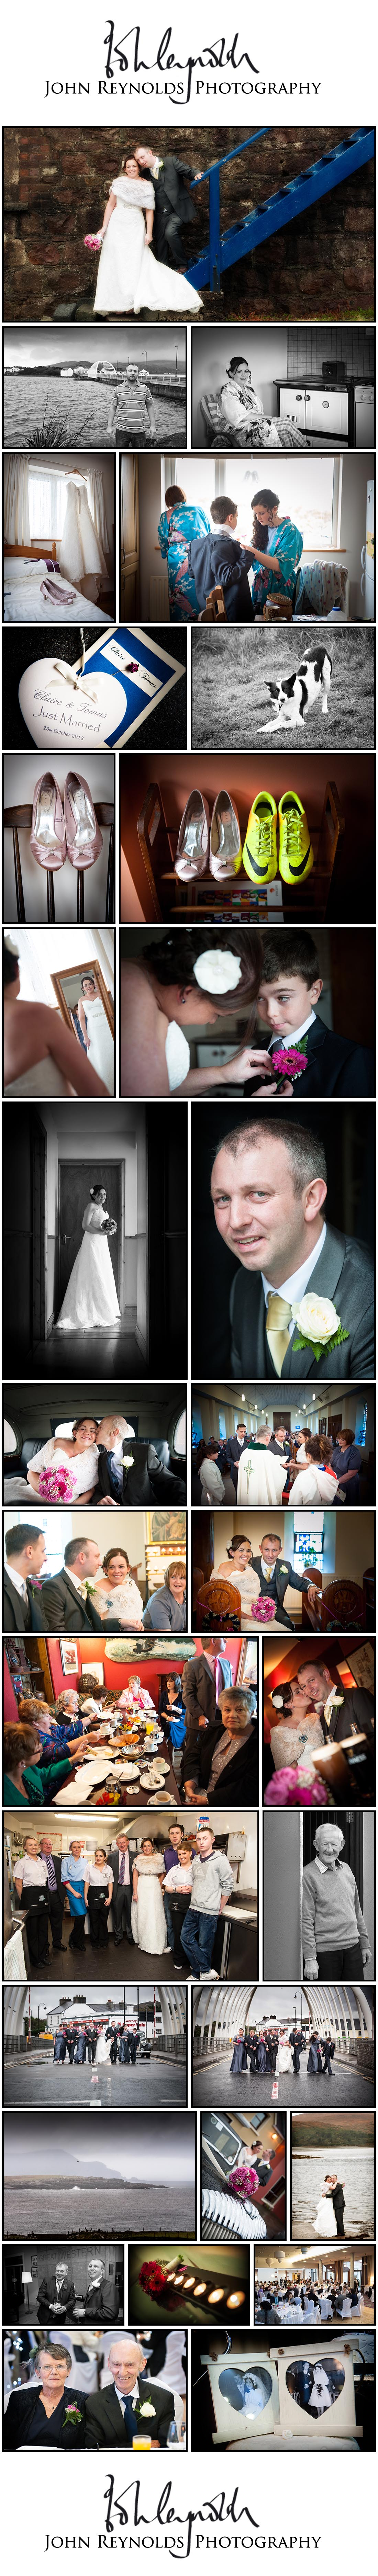 Blog Collage-Claire & Tom